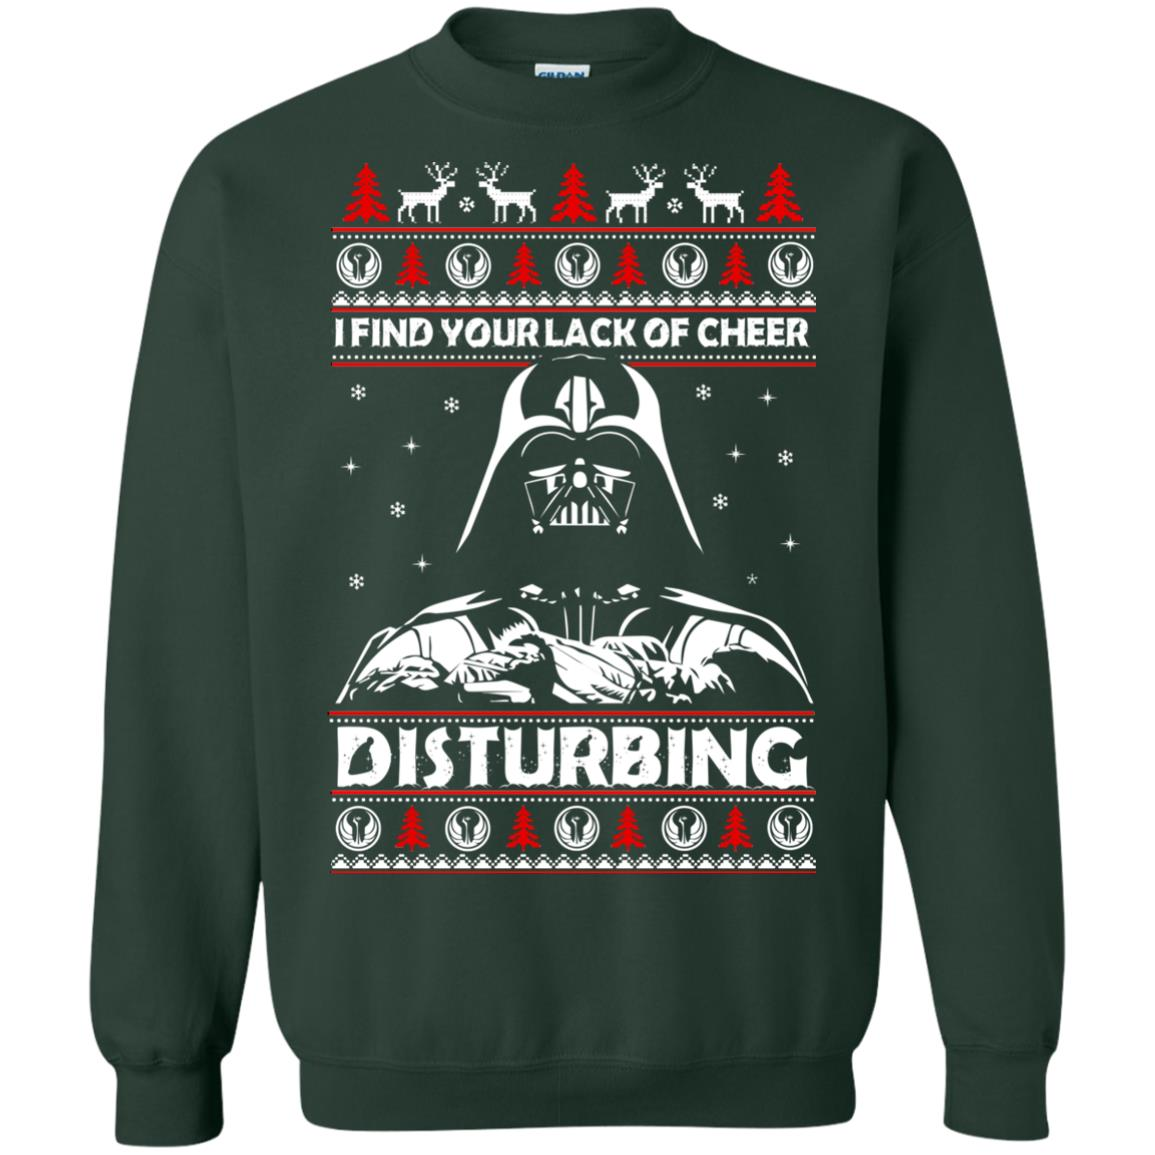 image 1767 - Darth Vader: I Find Your Lack of Cheer Disturbing Sweater, Shirt